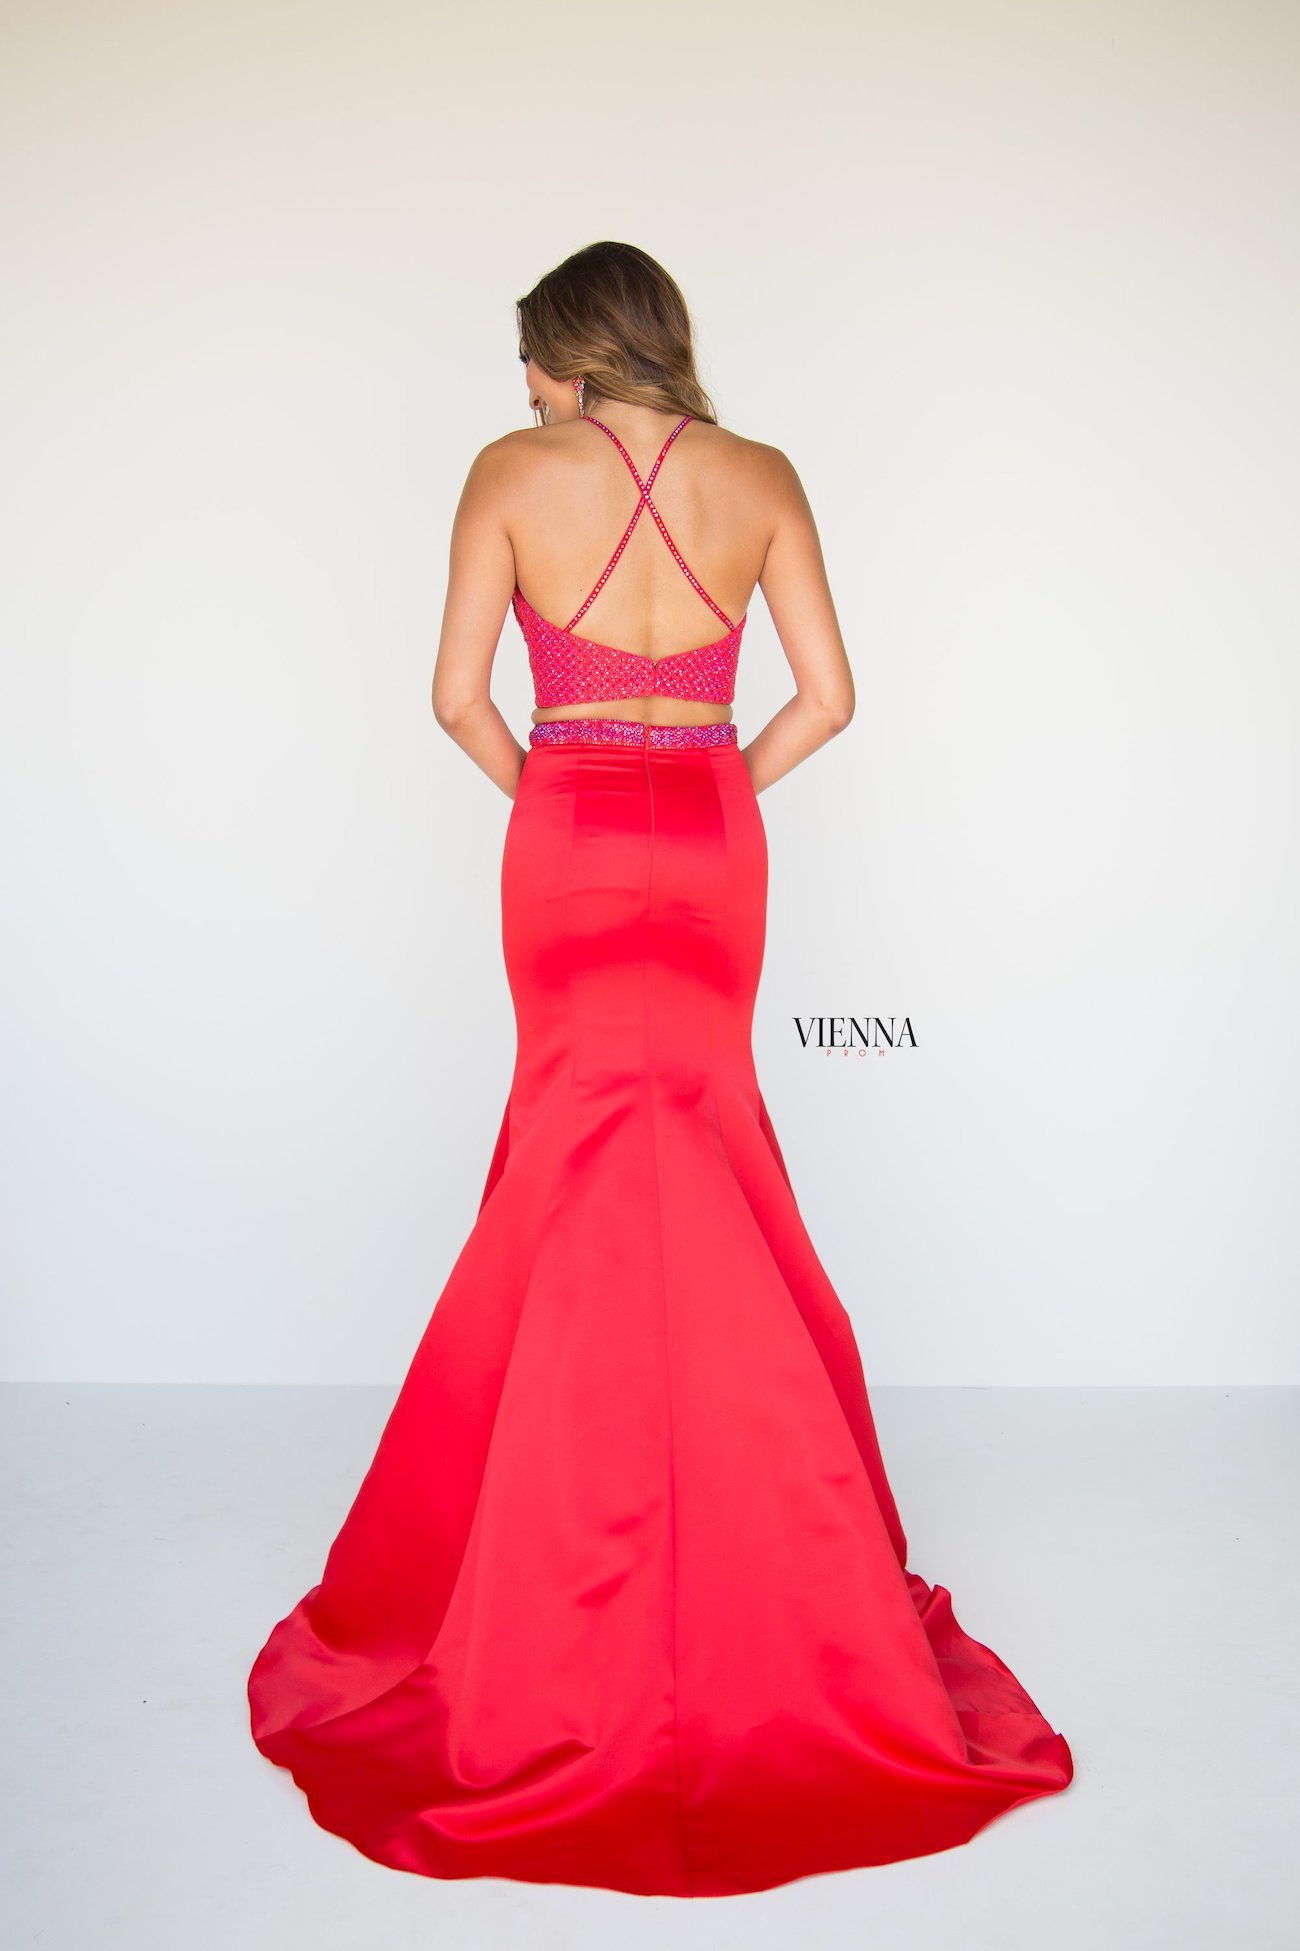 Style 8291 Vienna Black Size 00 Prom Jewelled Backless Tall Height Mermaid Dress on Queenly